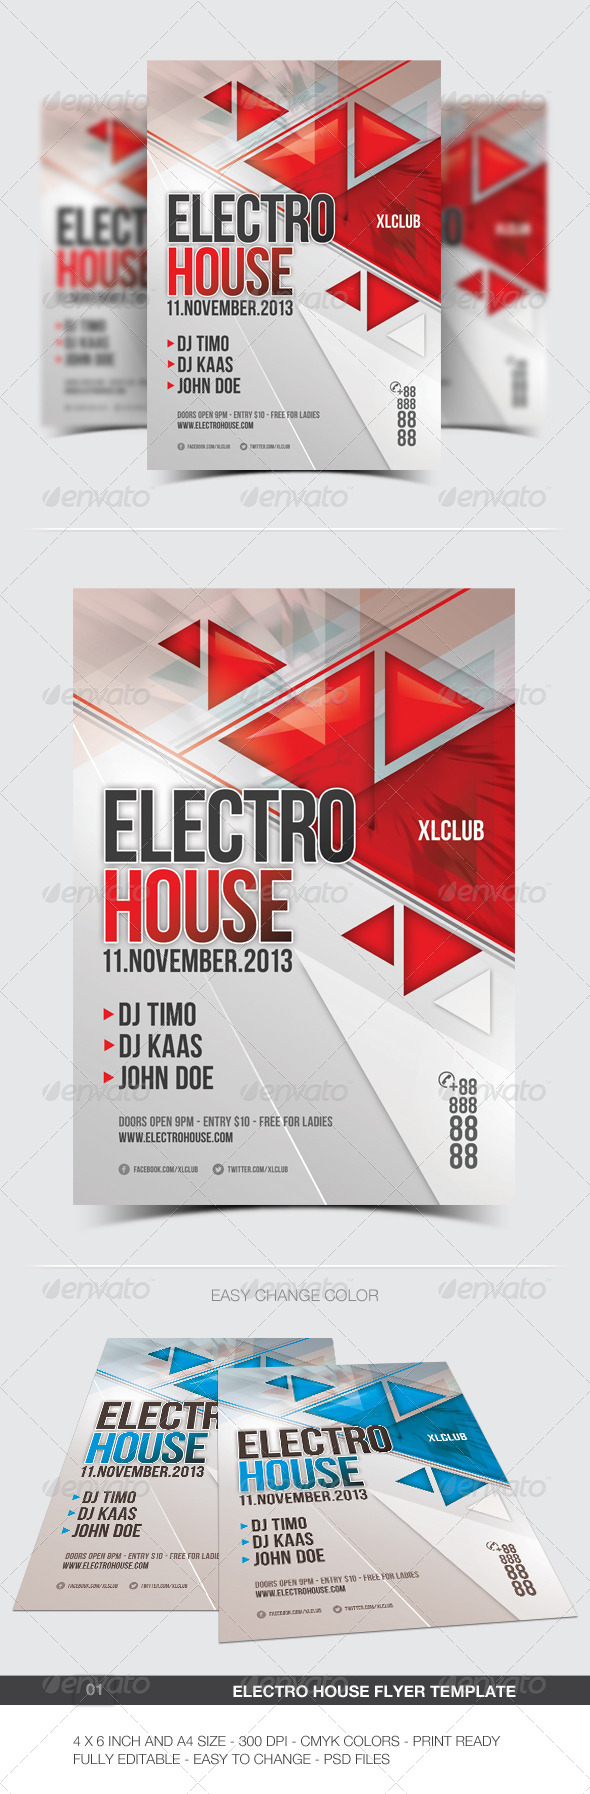 Electro Flyer/Poster - 01 | Electro music, Edit text and Dj electro